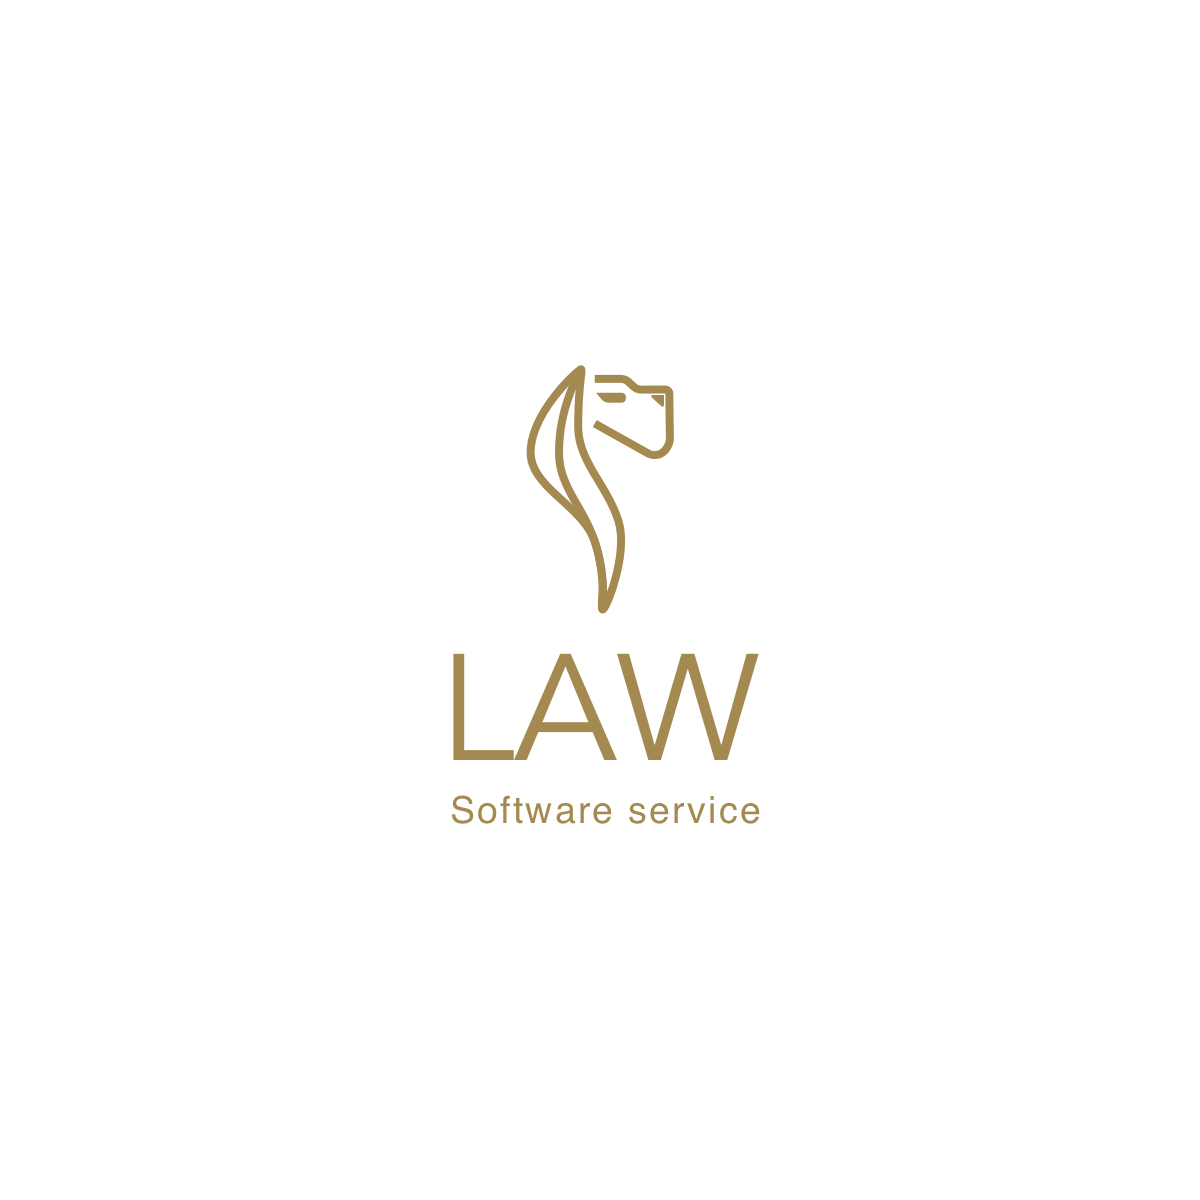 STYLIZED LION LEGAL LOGO